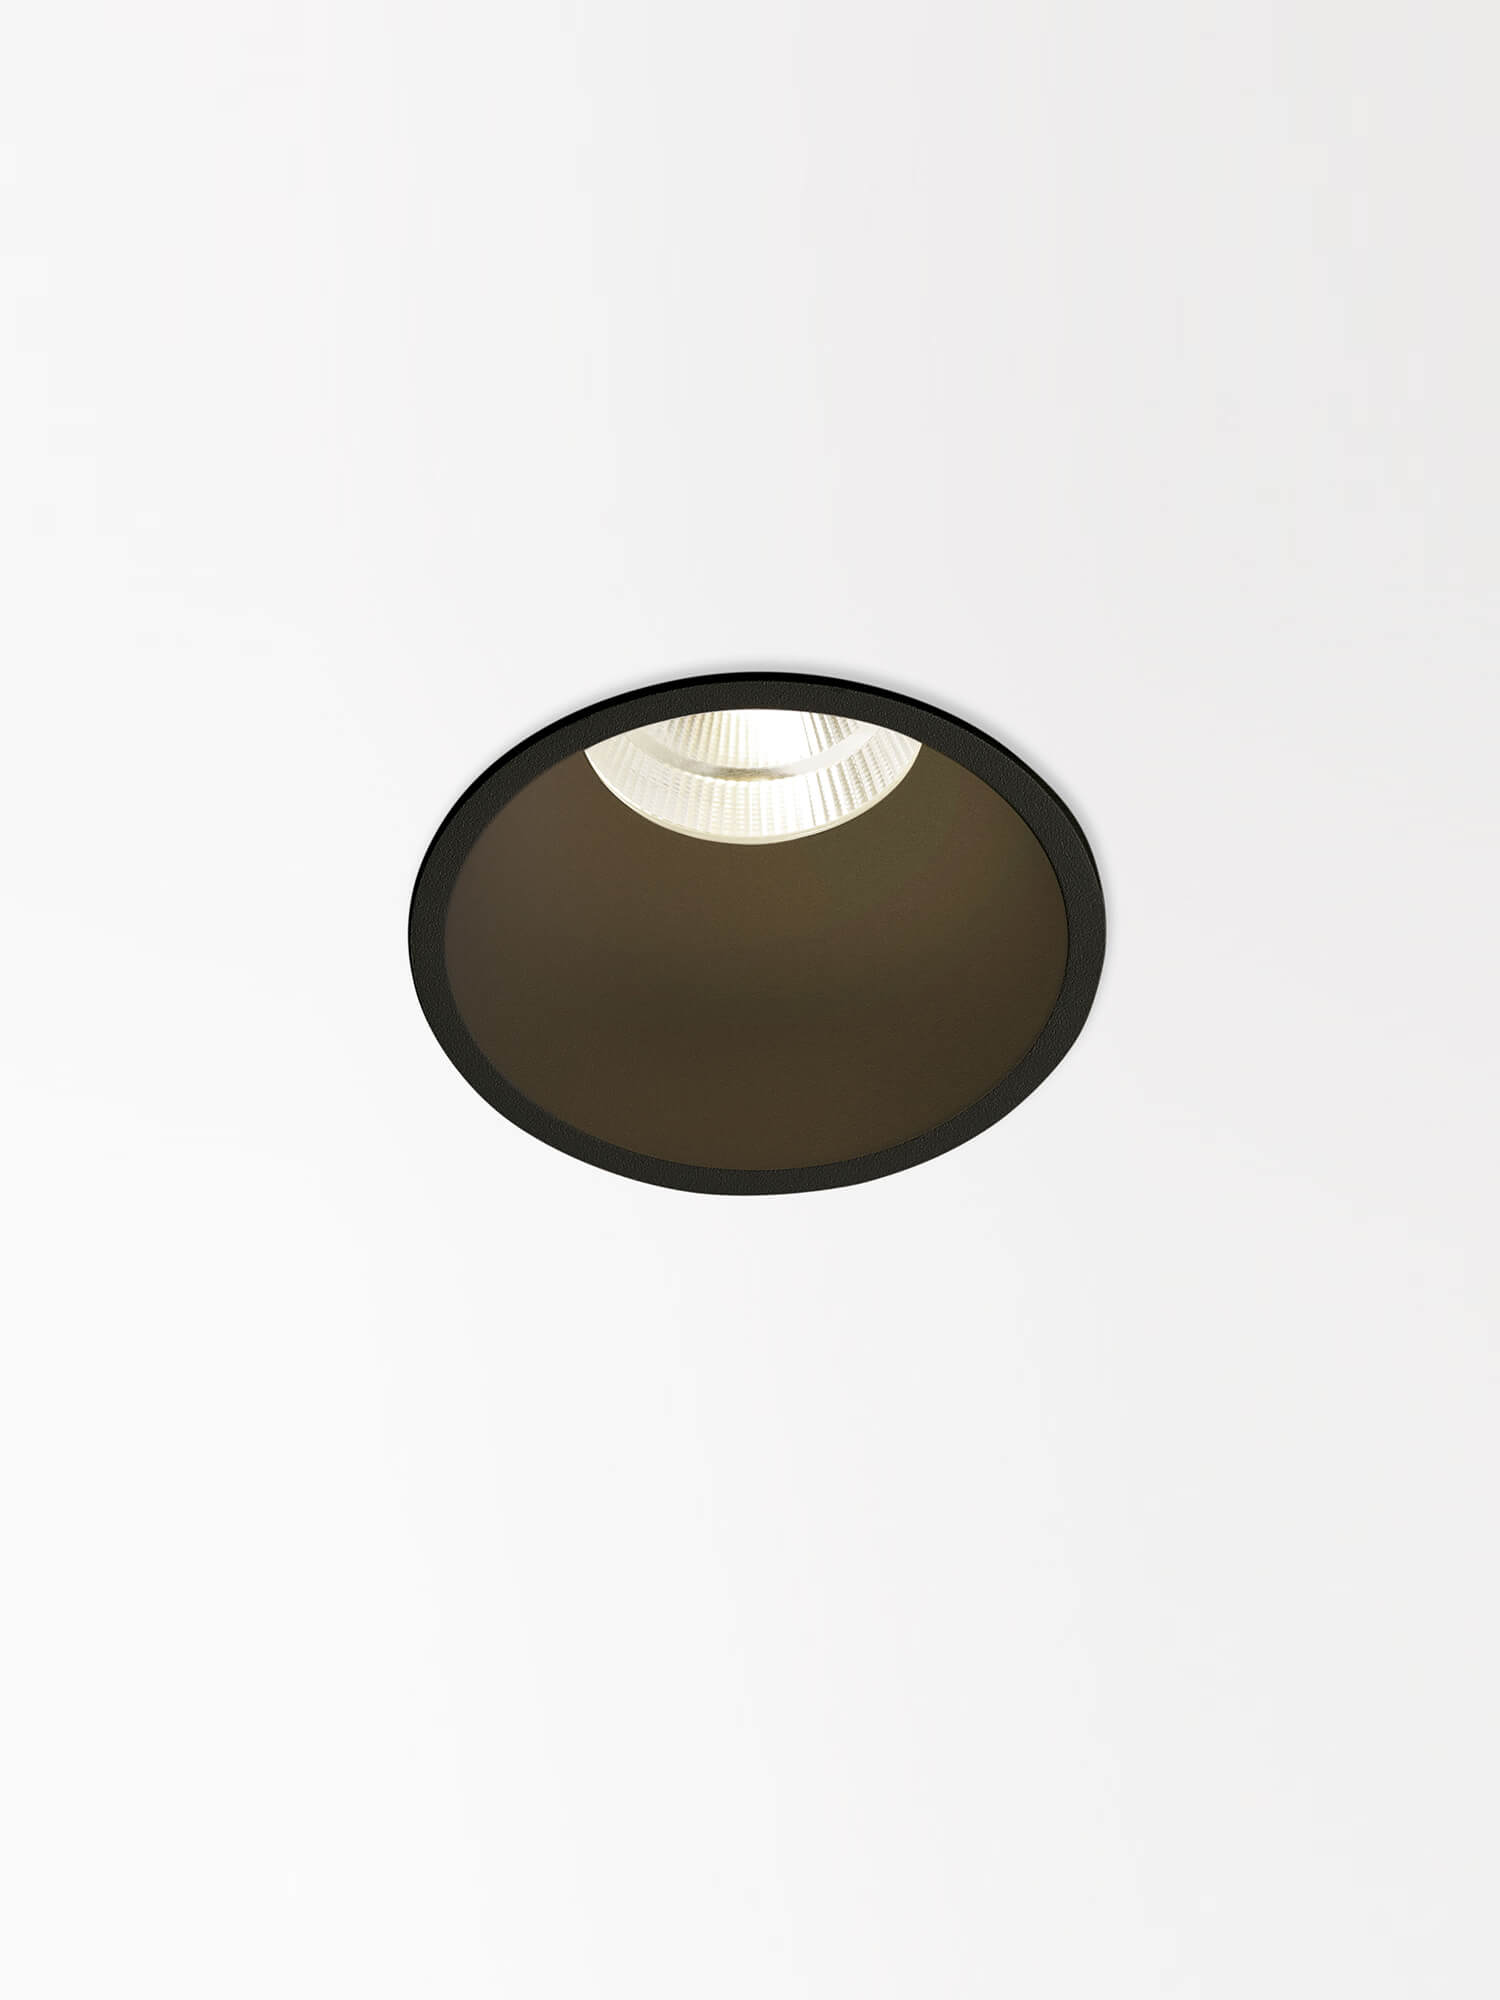 est living design directory deep ringo light inlite 2